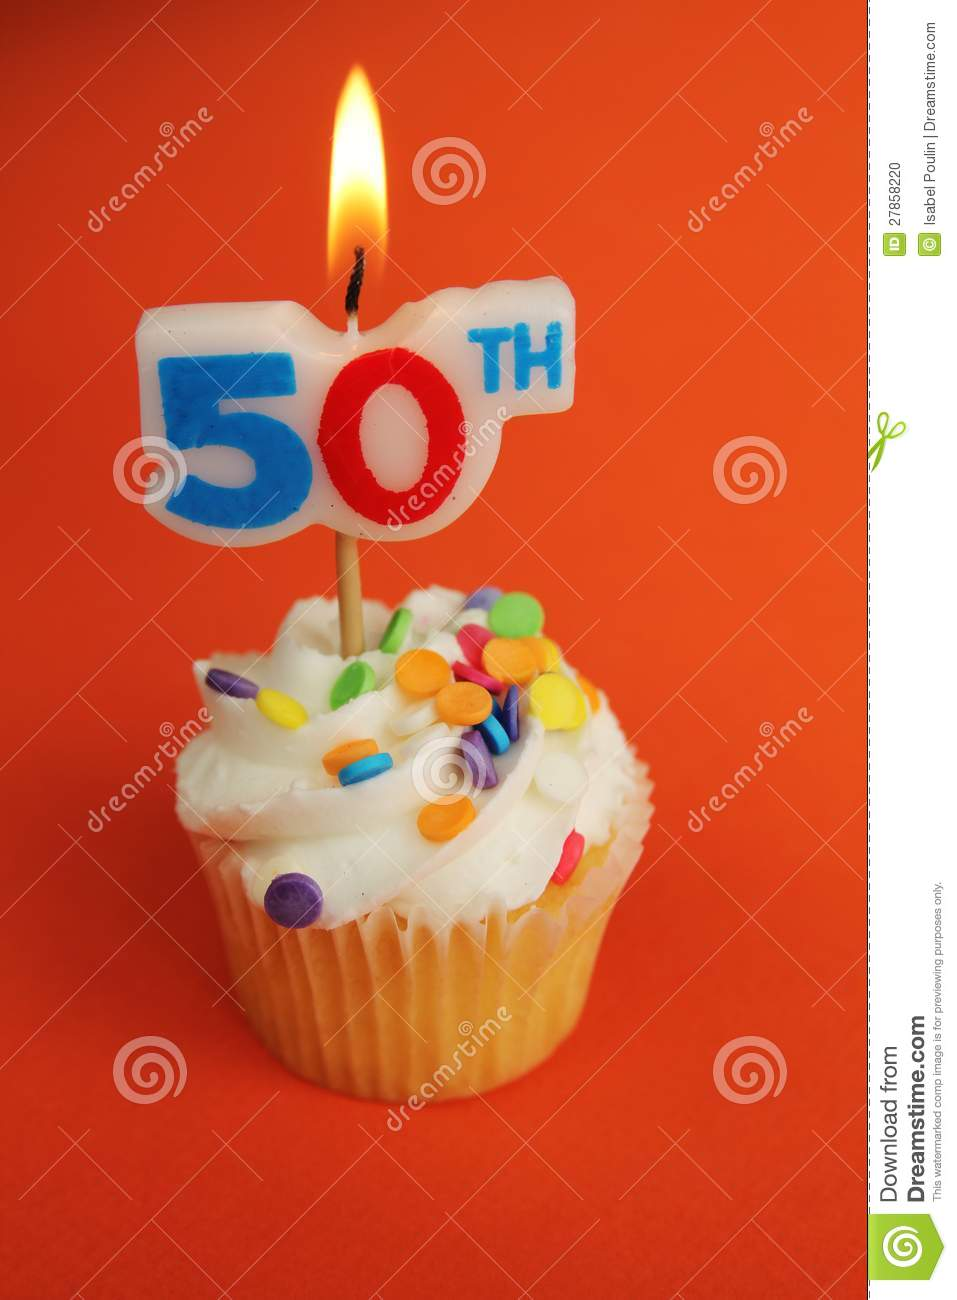 50th Birthday Stock Photo Image Of Frosting Decoration